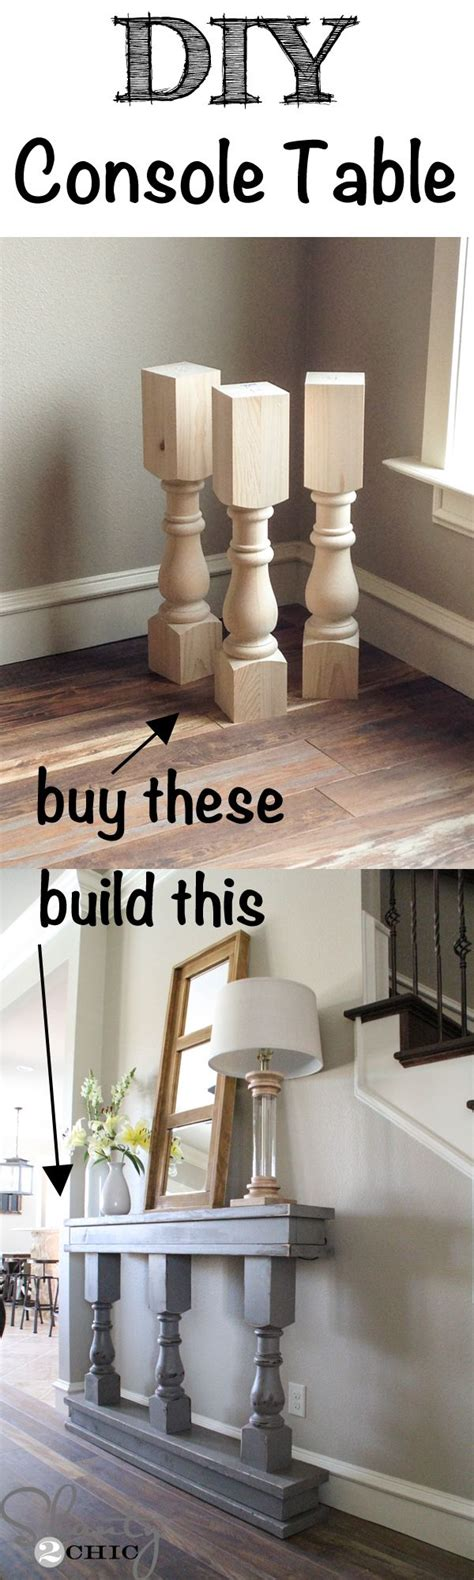 diy console table diy furniture furniture makeover